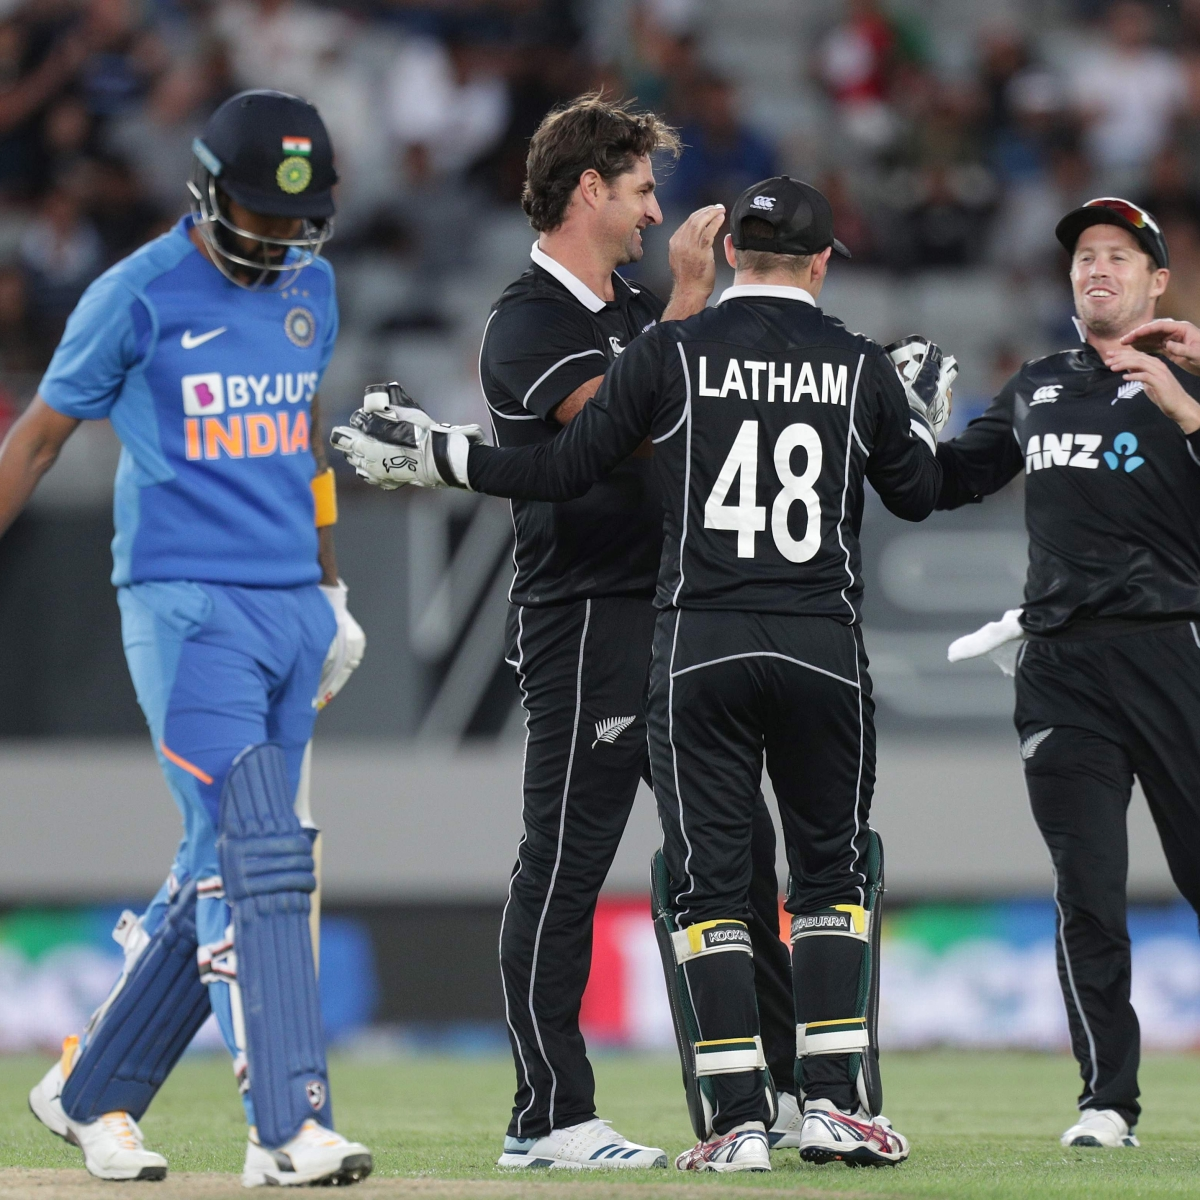 NZ vs IND 3rd ODI: When, where and how to watch live telecast